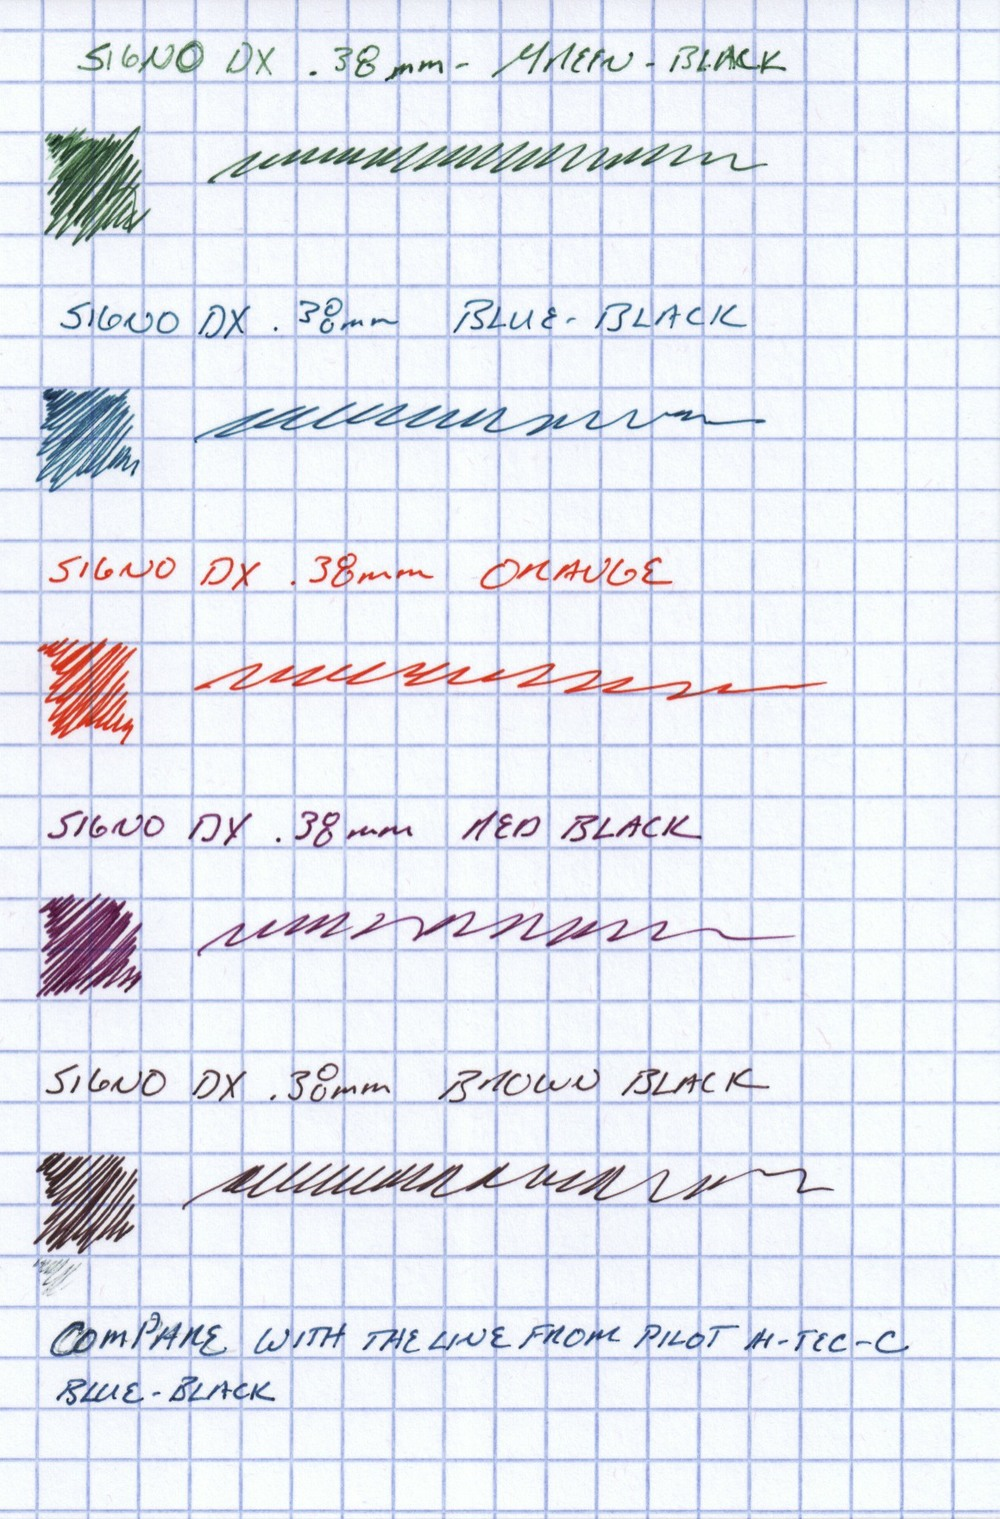 Writing Samples from the five Uni Signo DX Gel pens that I have, all in .38mm tip size.  For comparison purposes, I've also included a writing sample from a blue-black Pilot Hi-Tec-C gel pen, which I find writes a slightly cleaner line than the conical-tip DX.